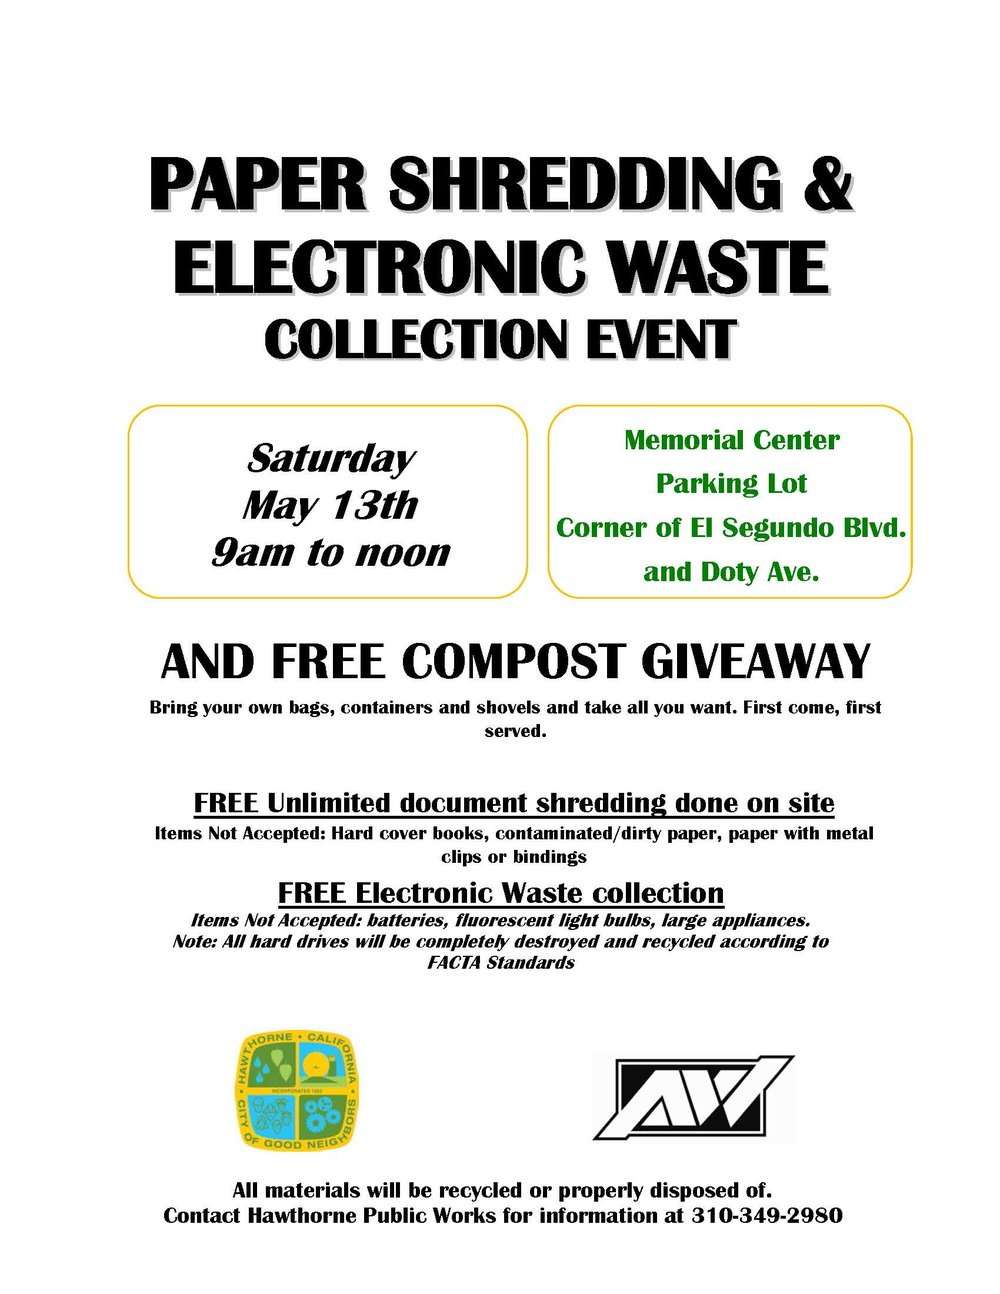 Paper Shredding & Electronic Waste Collecction